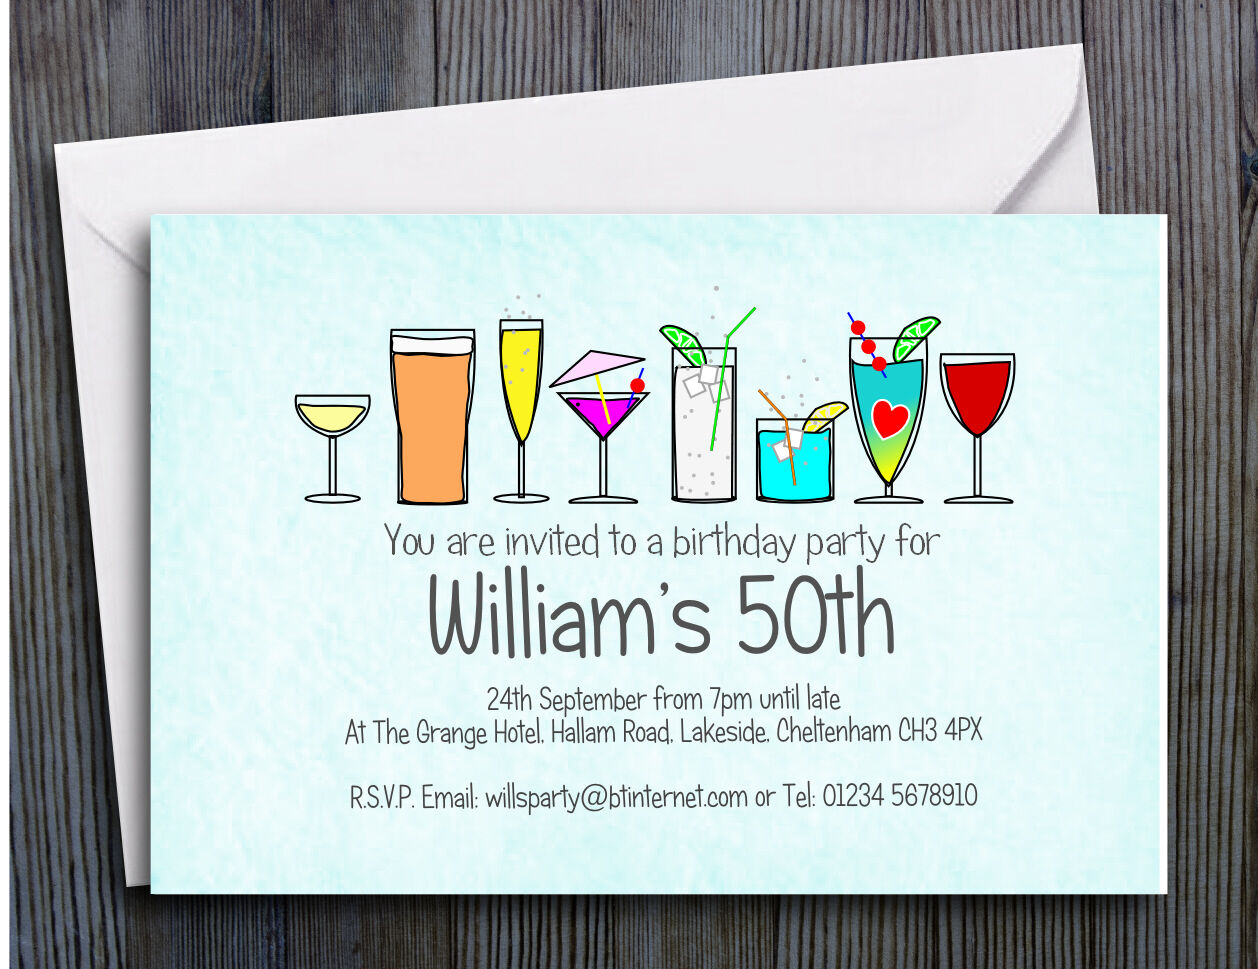 70 PARTY INVITATIONS PERSONALISED 18th 21st 30th 40th 50th 60th Birthday Invites